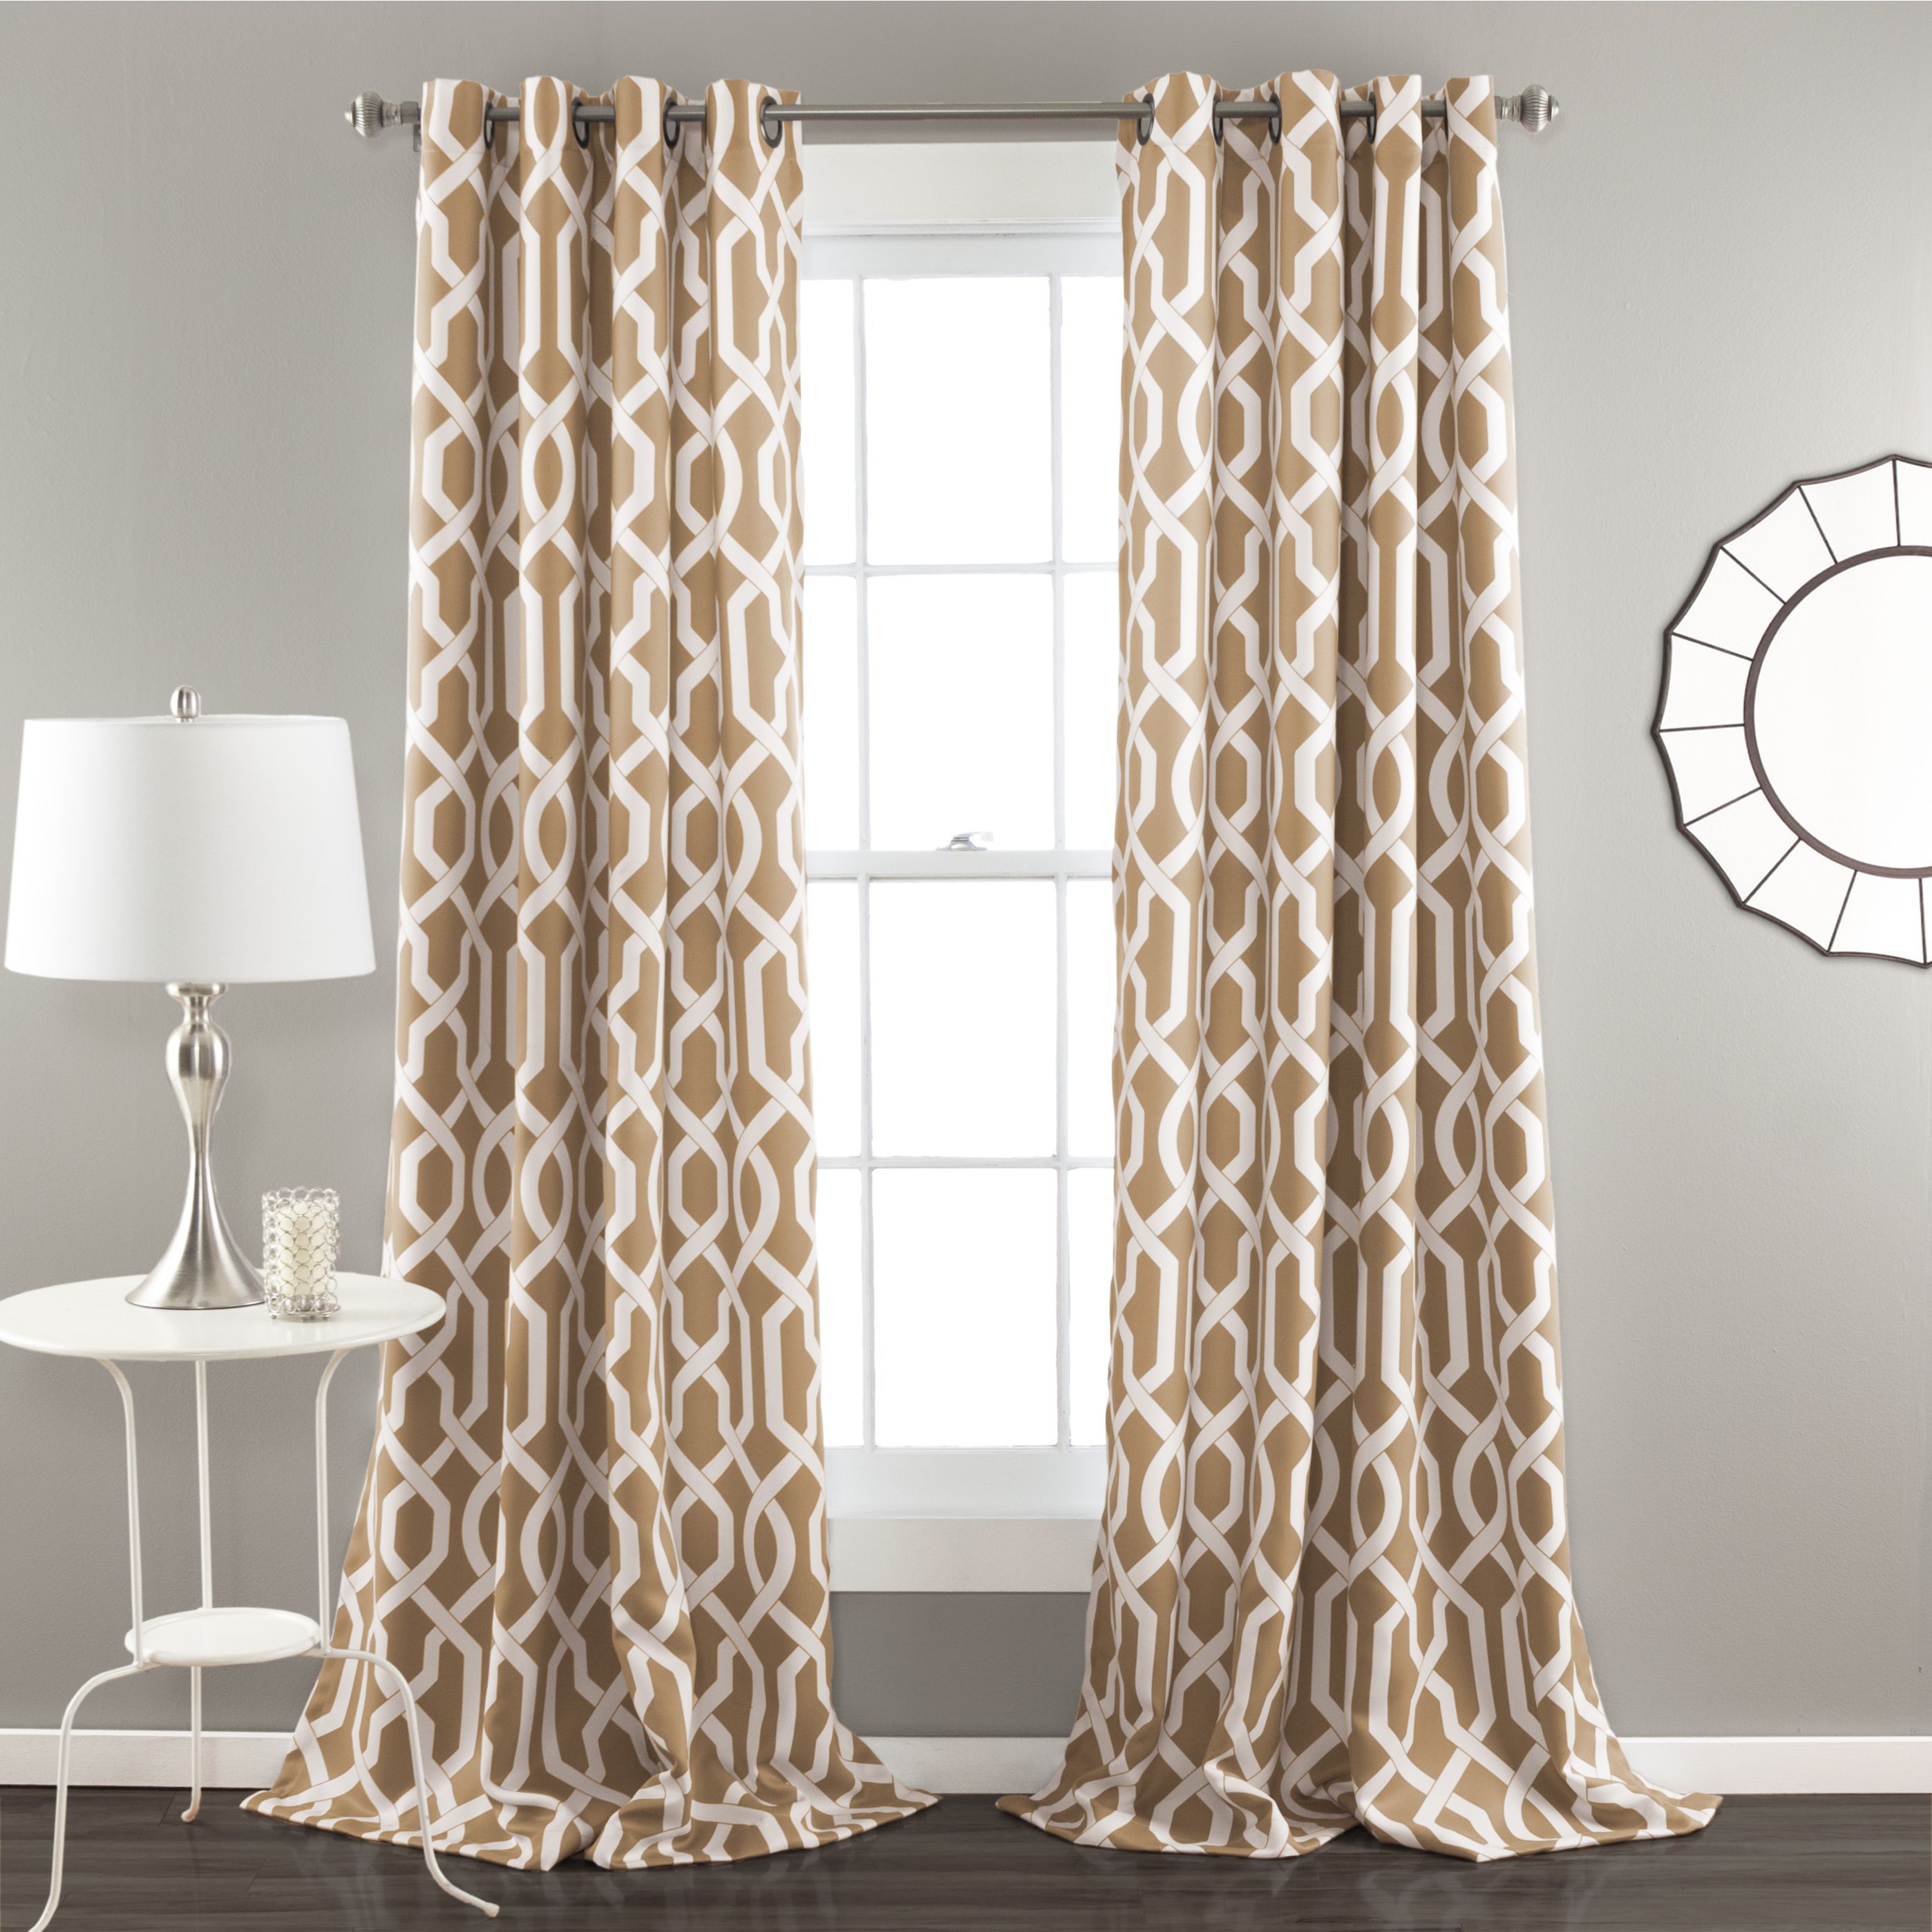 Curtain pair overstock shopping great deals on lights out curtains - Find This Pin And More On Products By Overstock Lush Decor Edward Moroccan Pattern Blackout Curtain Panel Pair